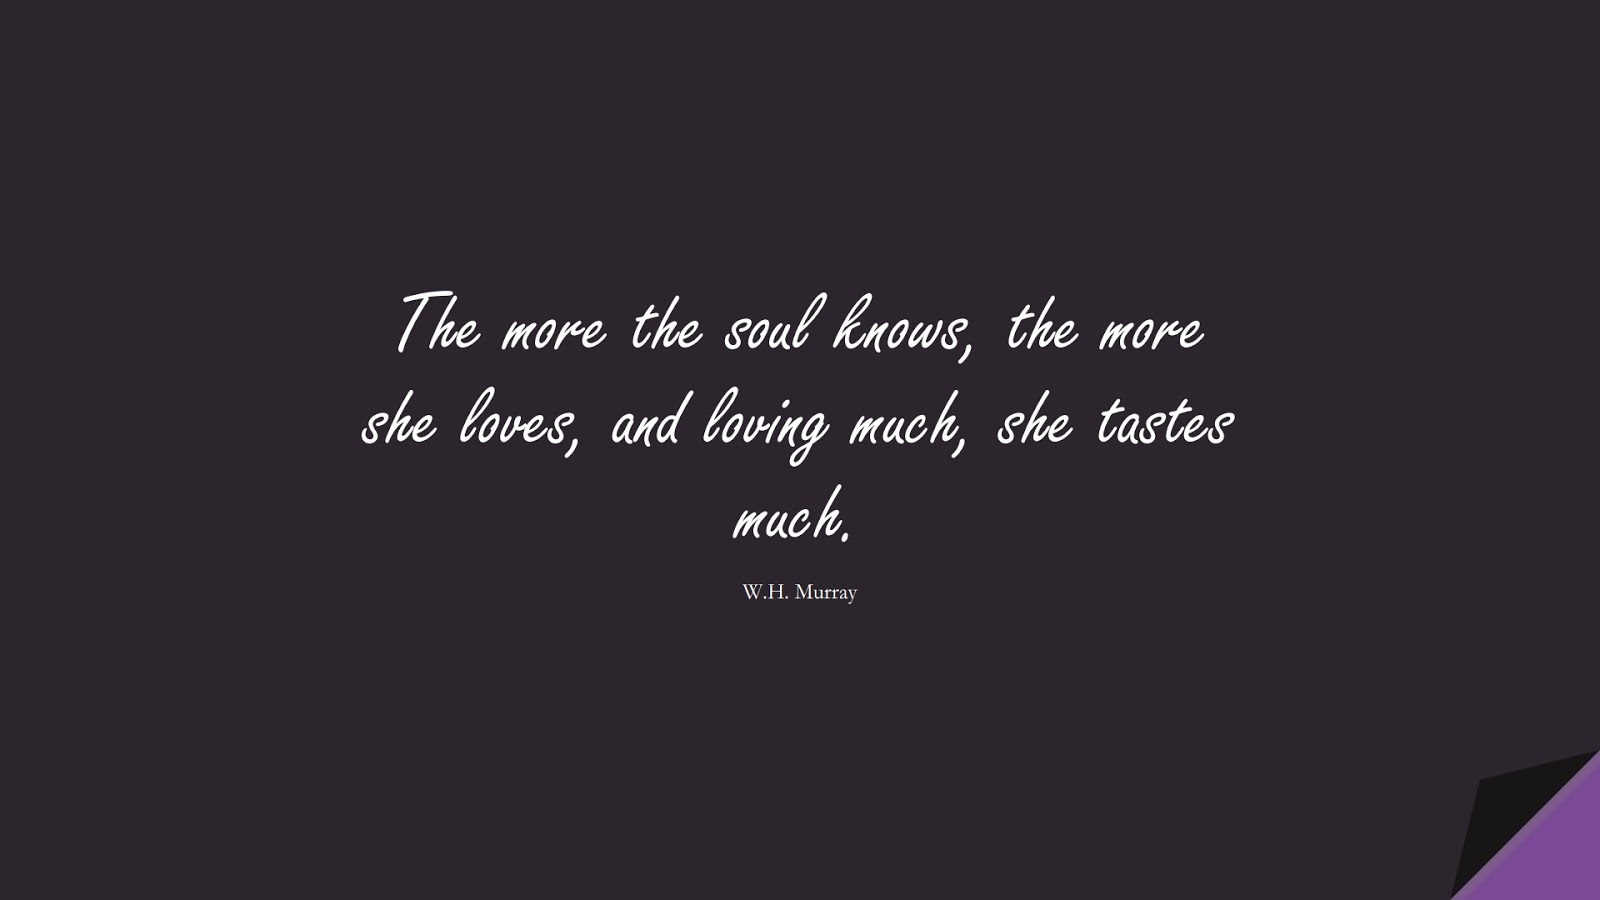 The more the soul knows, the more she loves, and loving much, she tastes much. (W.H. Murray);  #LoveQuotes